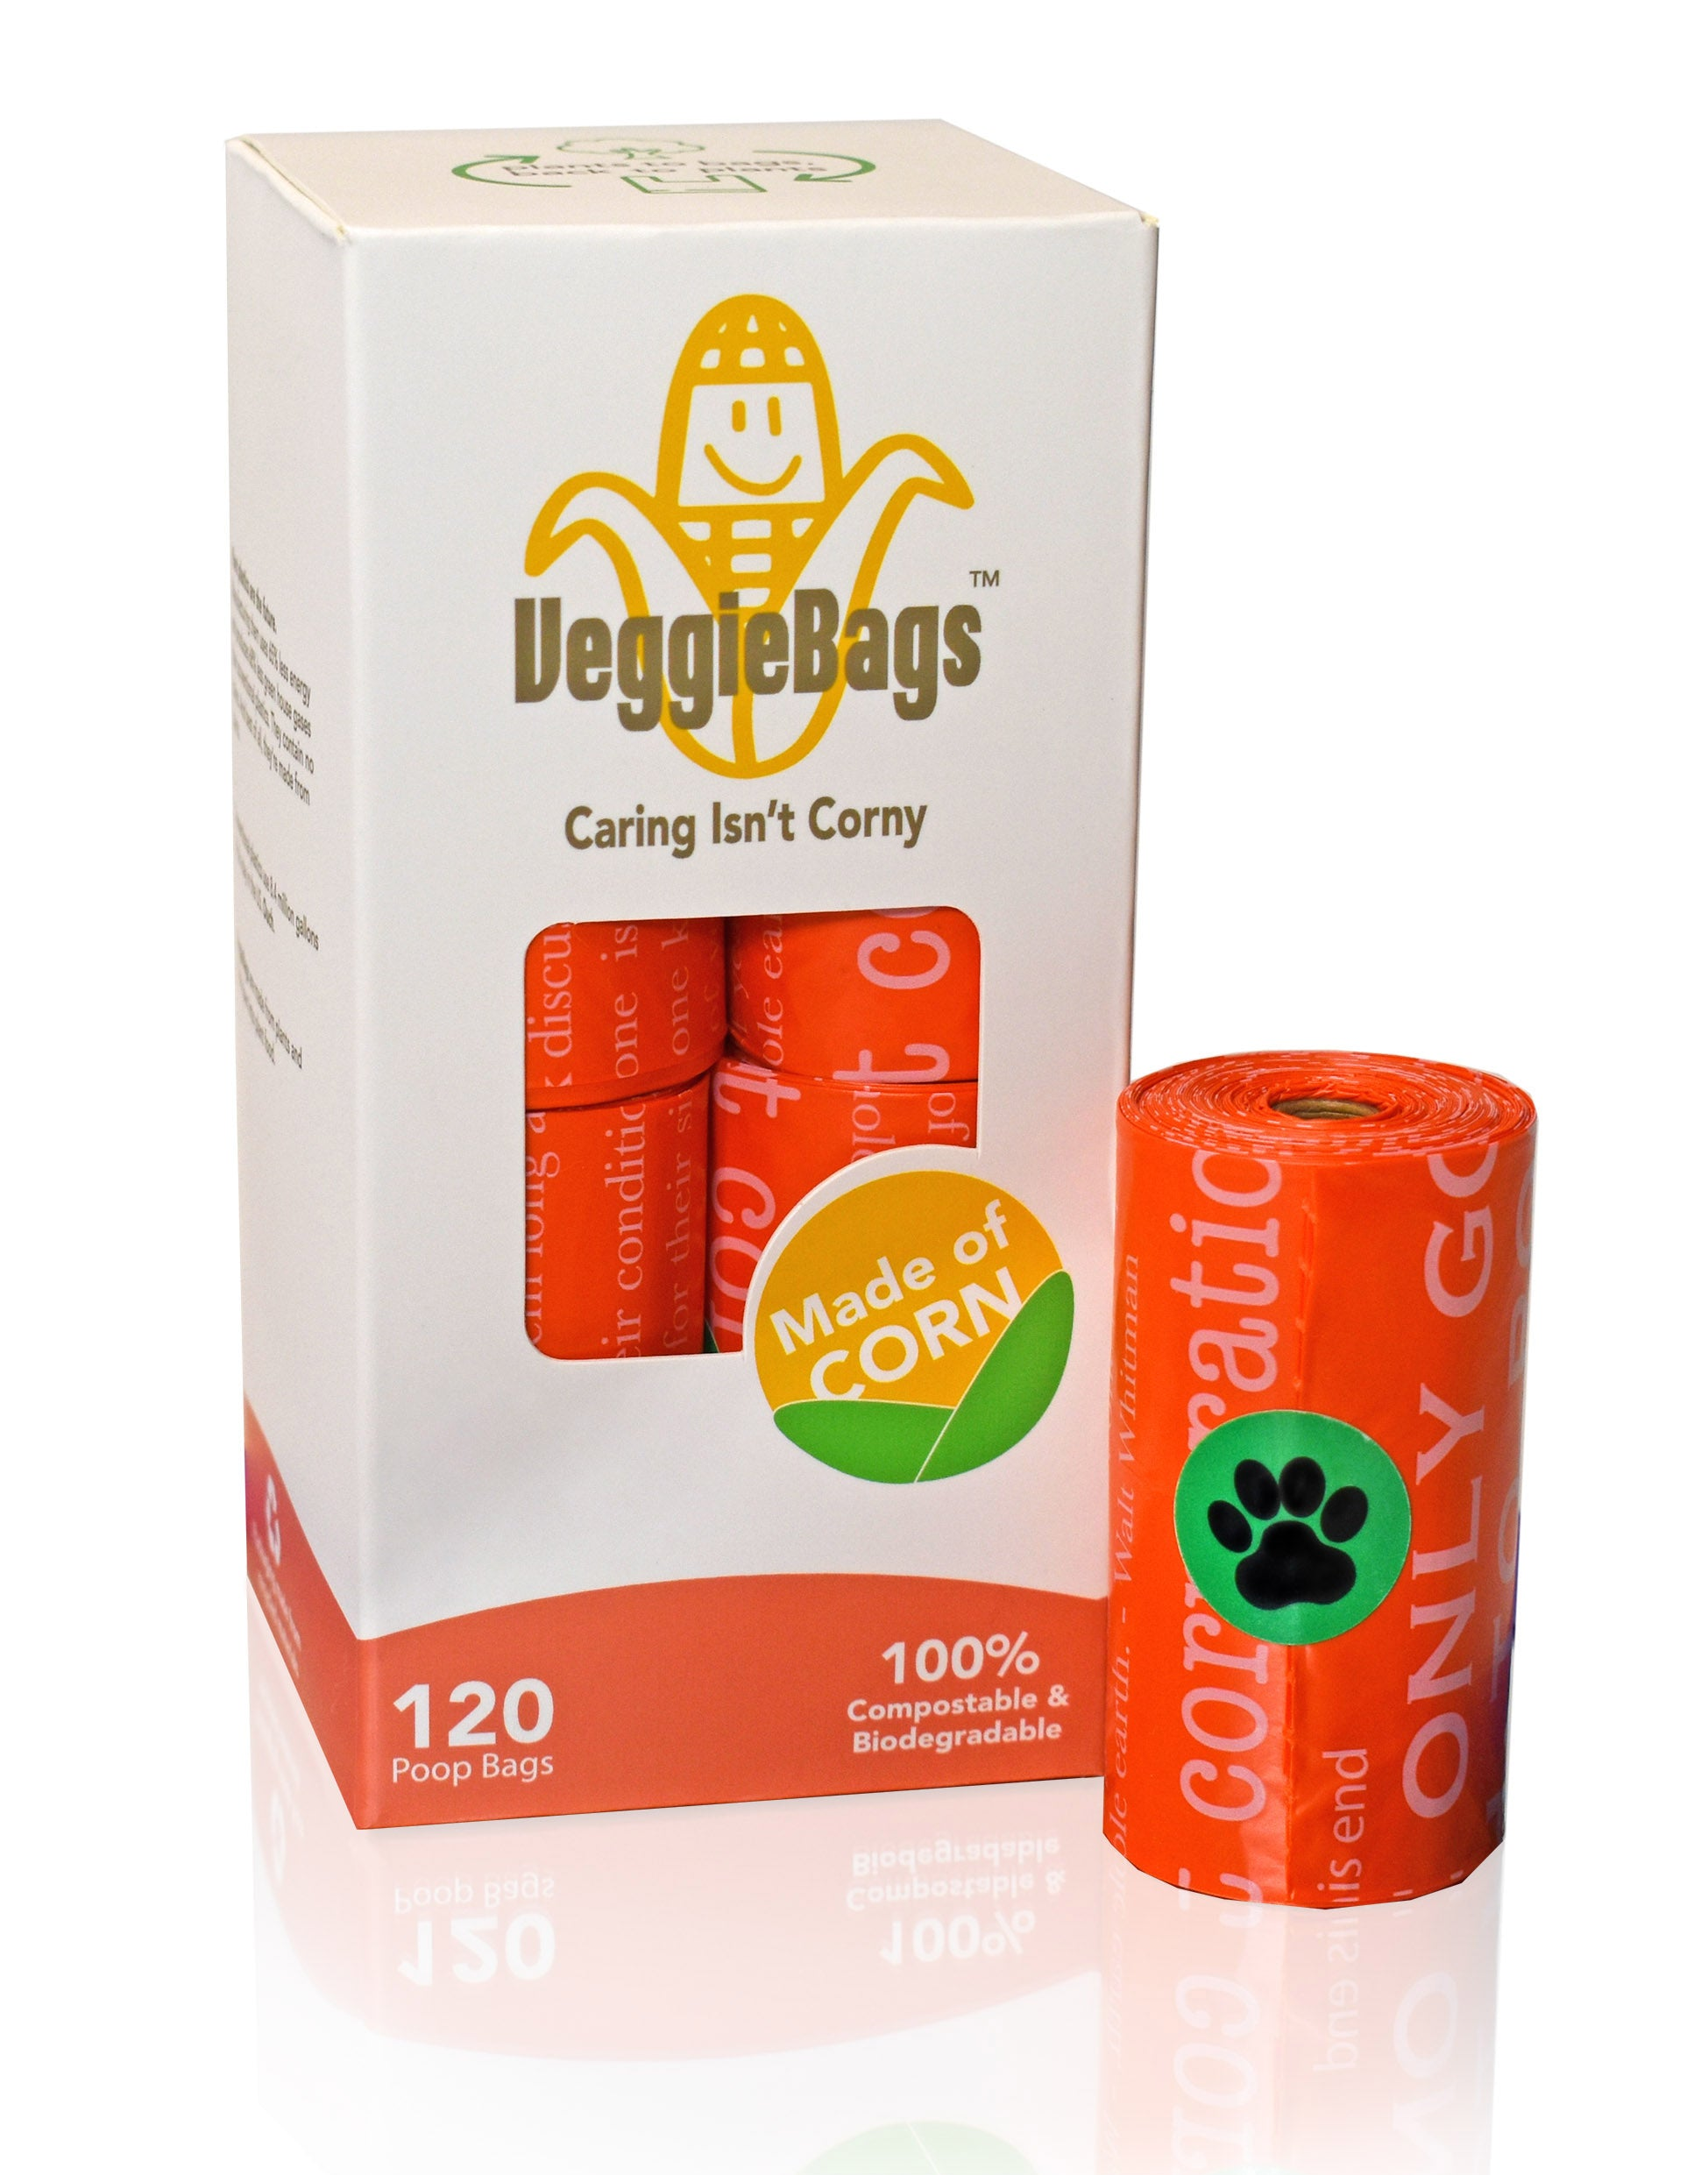 VeggieBags - 100% Compostable and Biodegradable Poop Bags